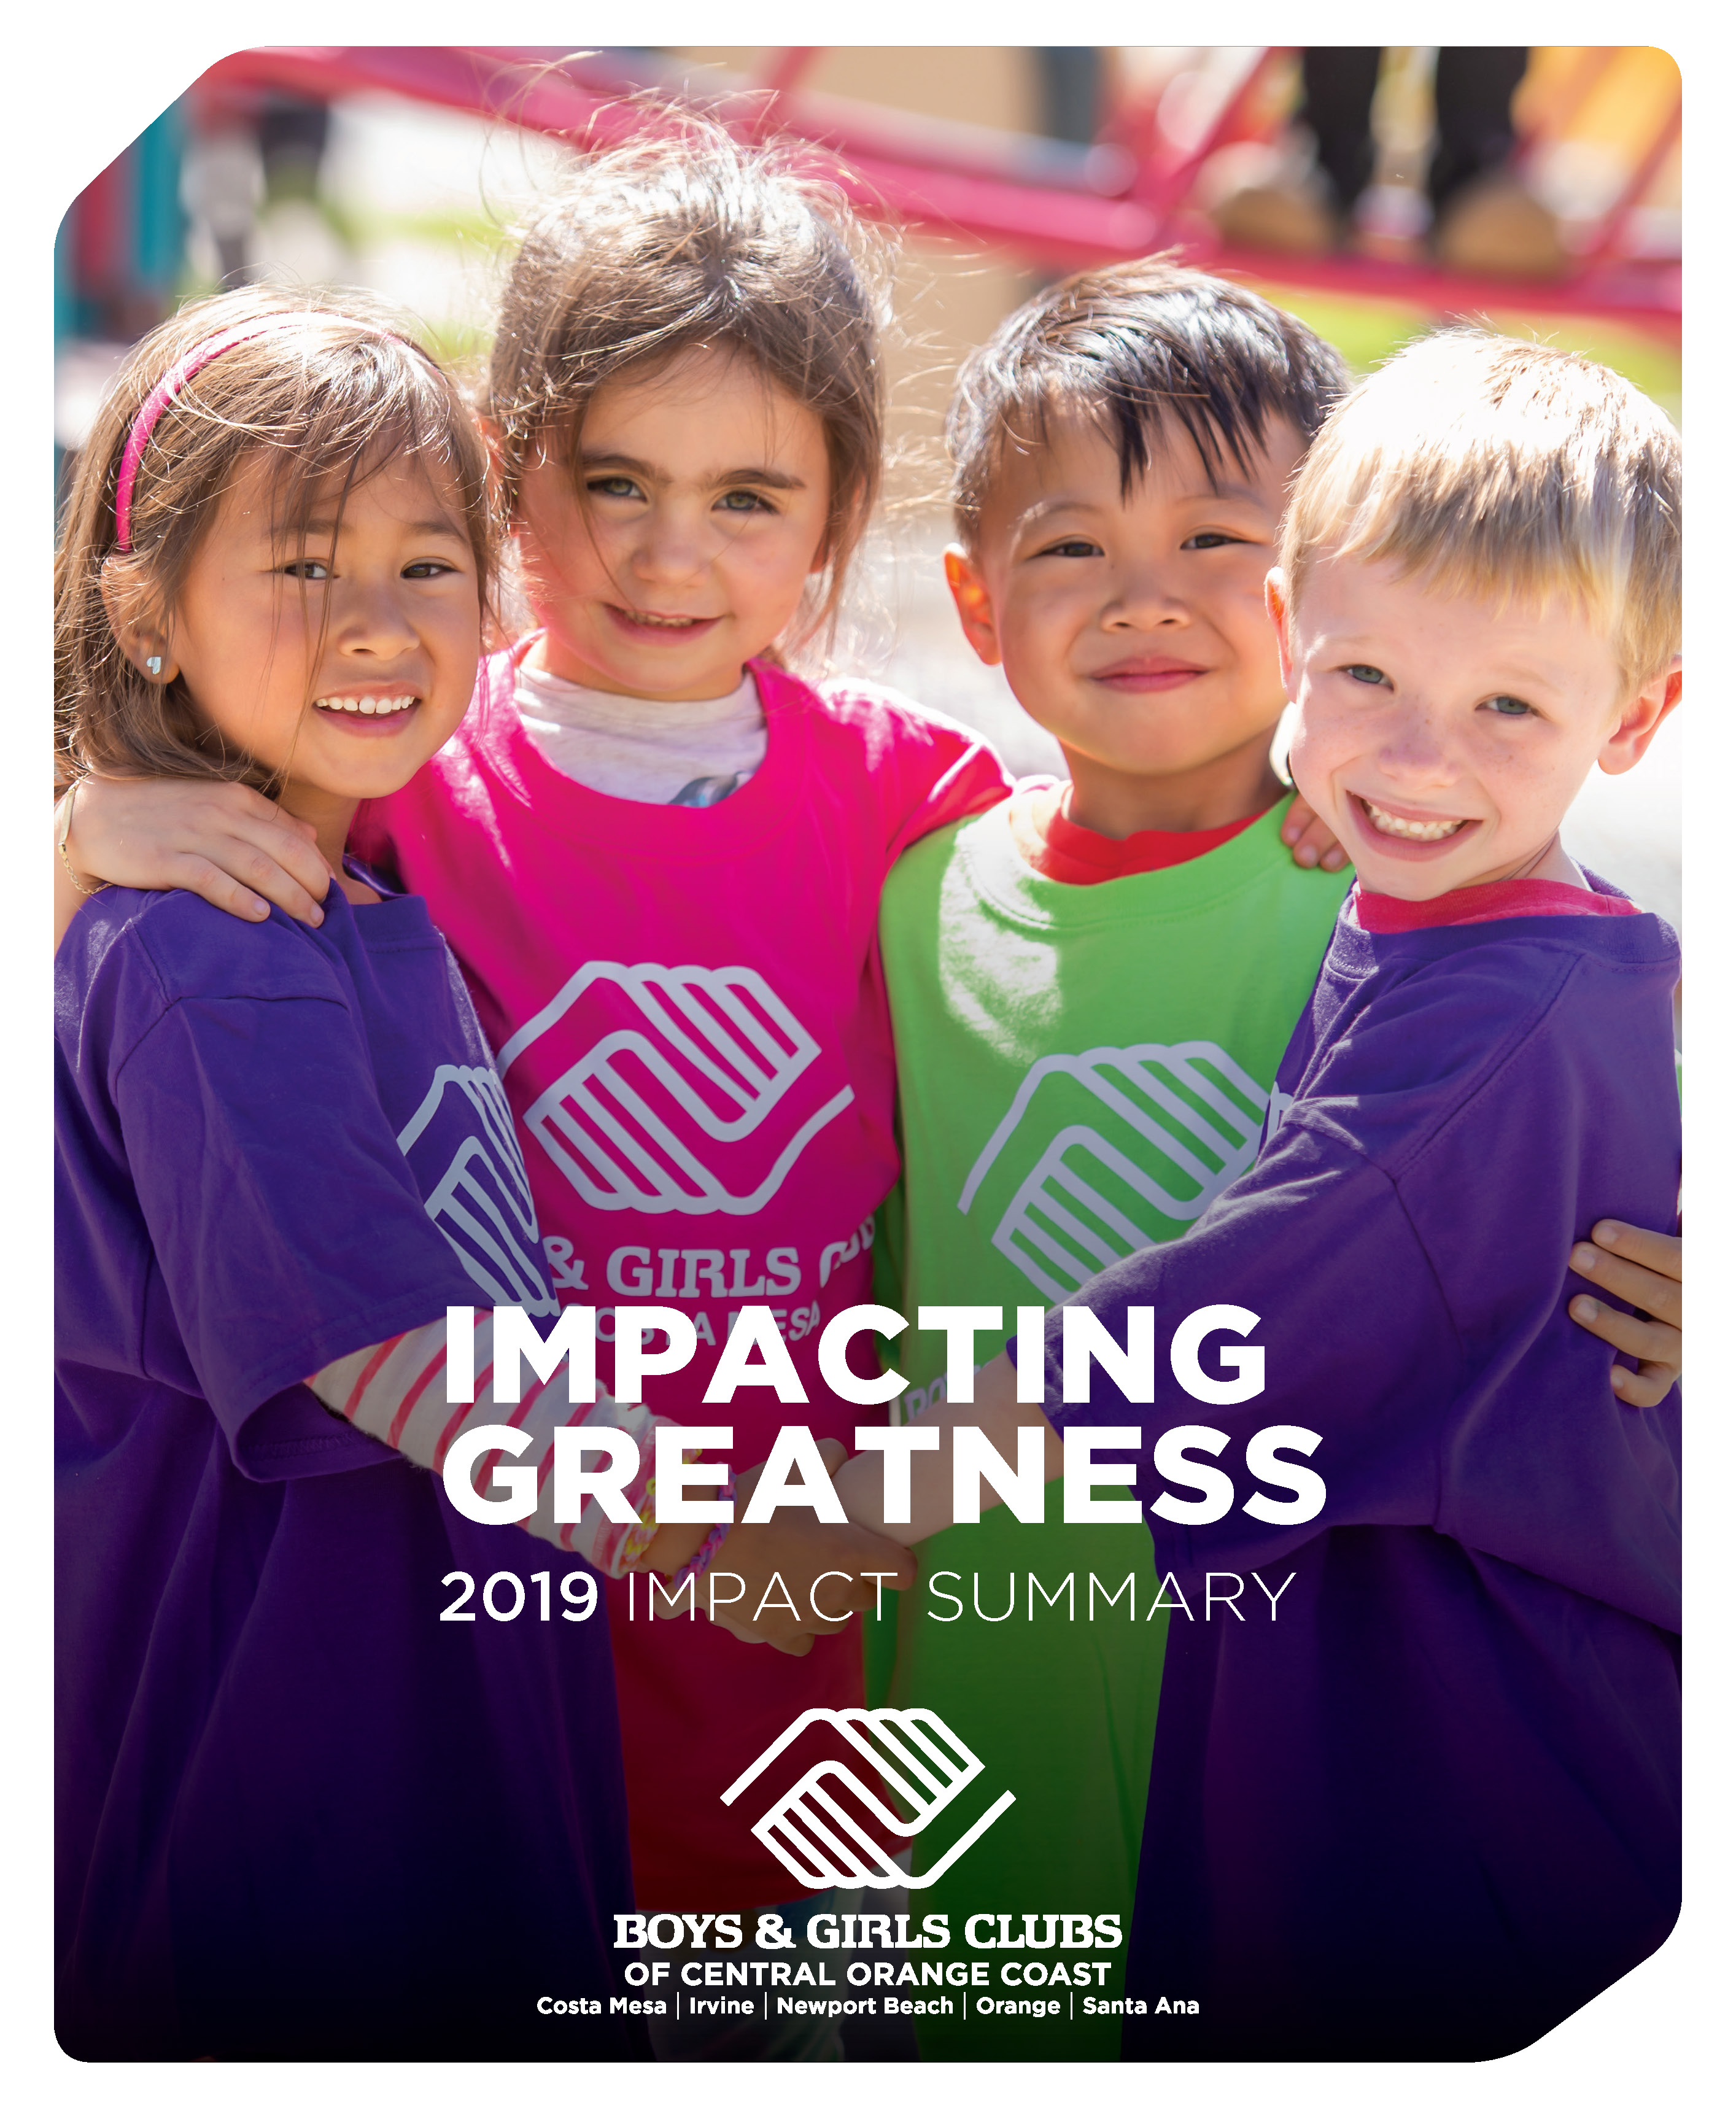 2019 Impact Report cover impacting greatness